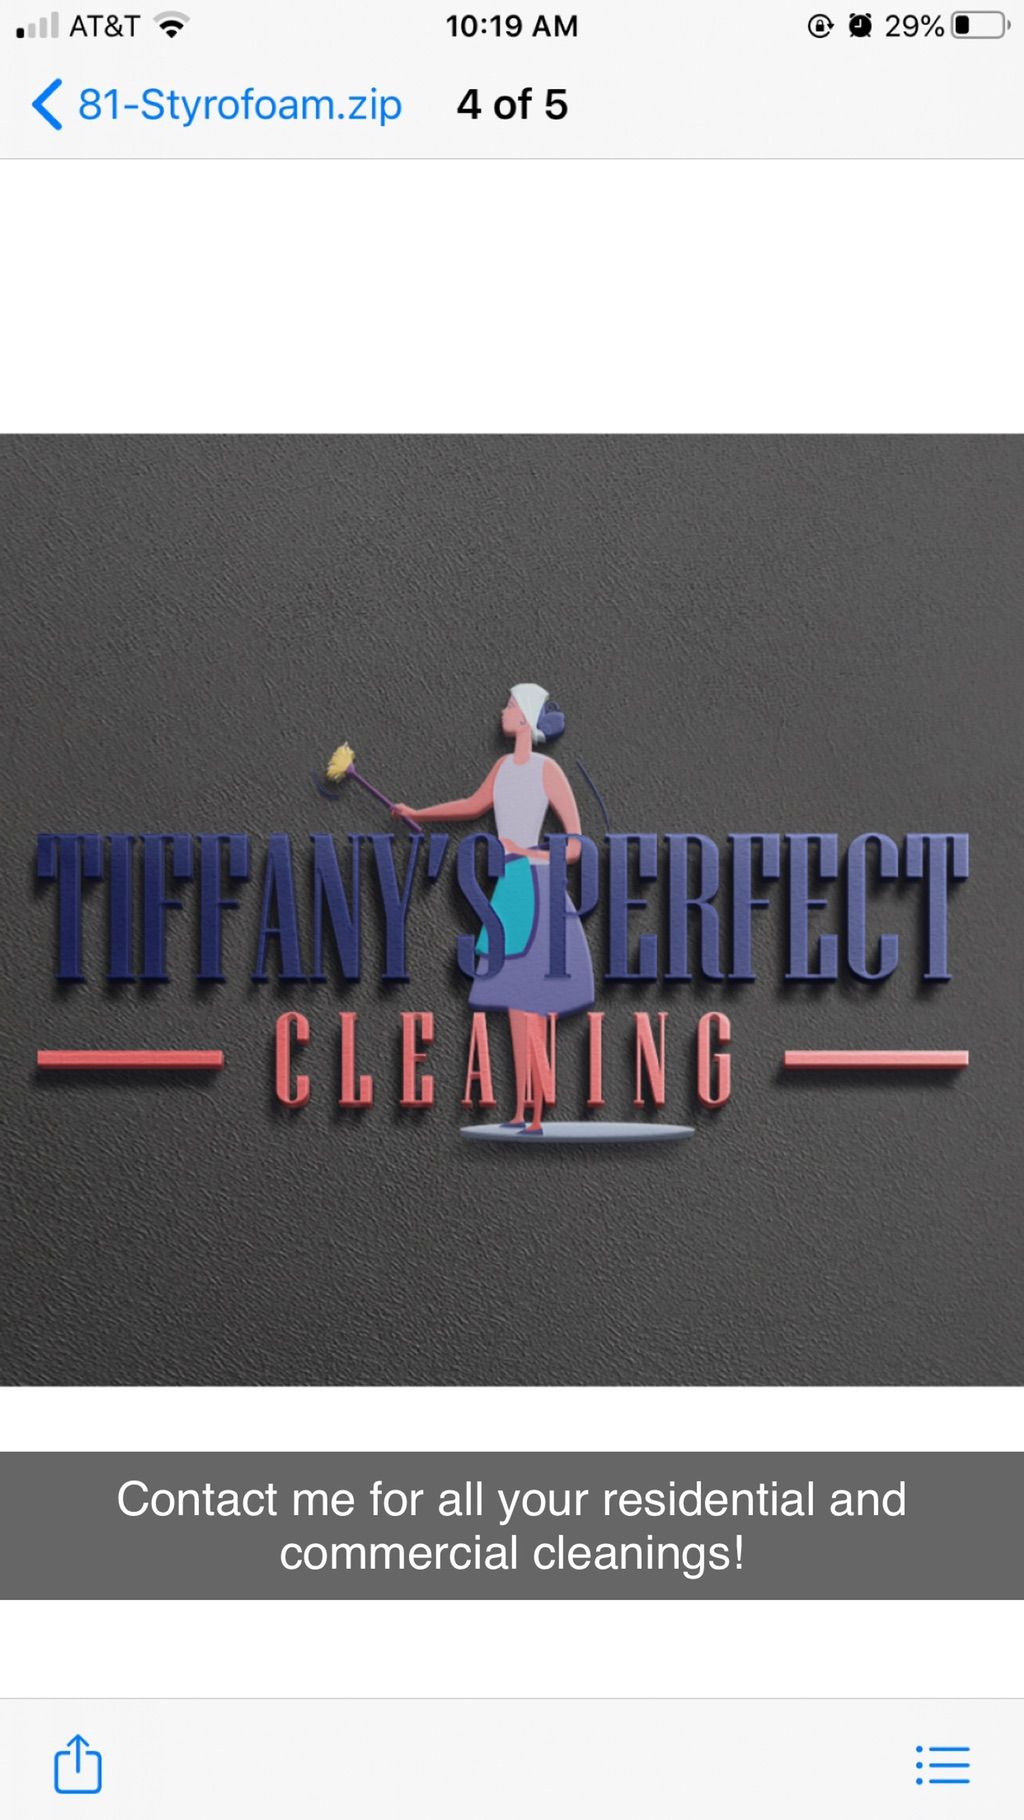 Tiffany's Perfect Cleaning